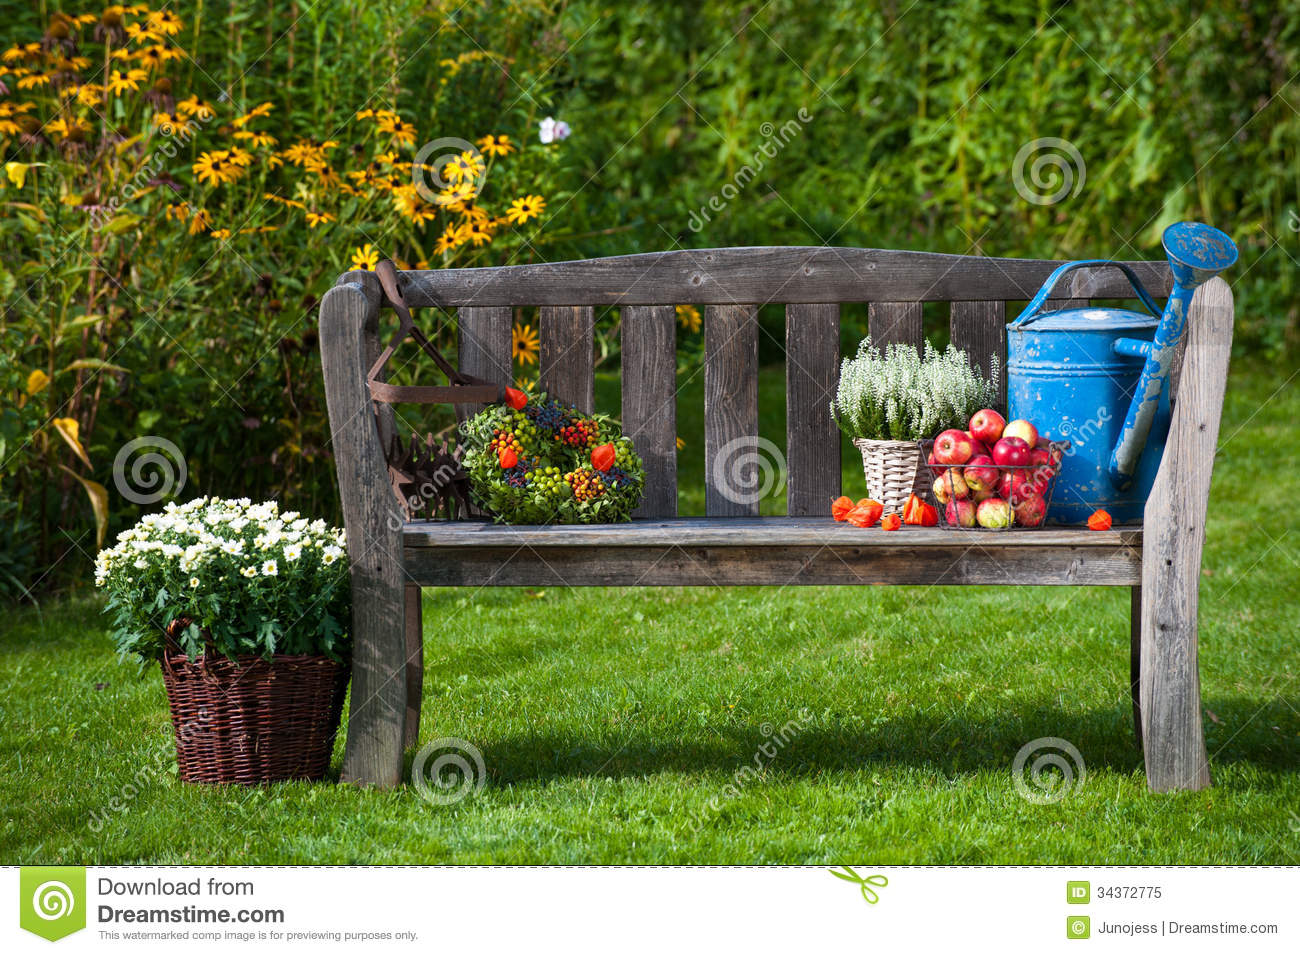 Autumn garden stock image. Image of asters, flower, apples ...